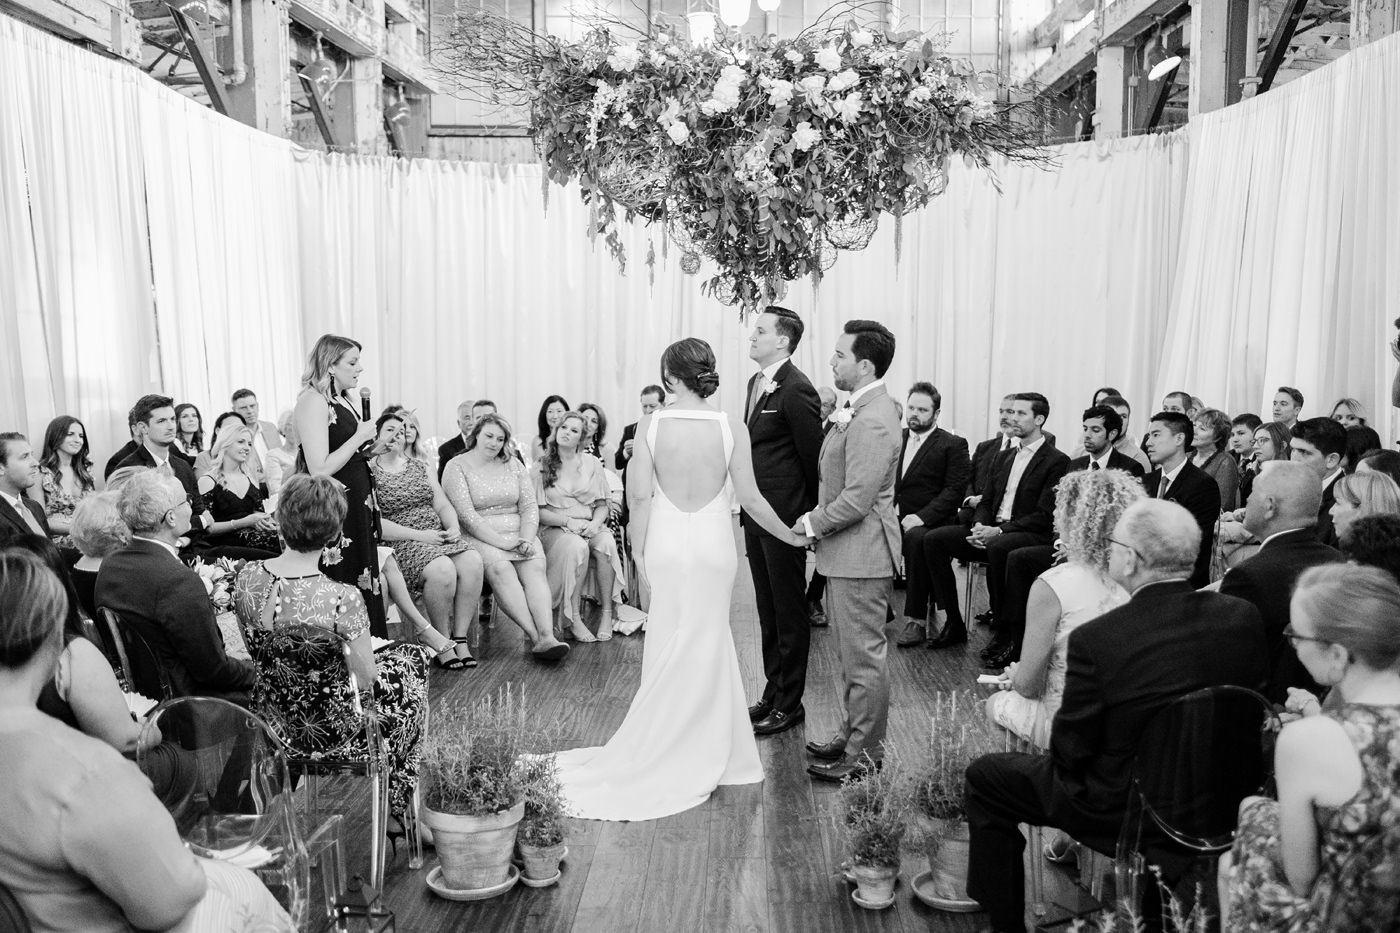 040-documentary--style-indoor-wedding-photos-at-sodo-park-by-herban-feast.jpg